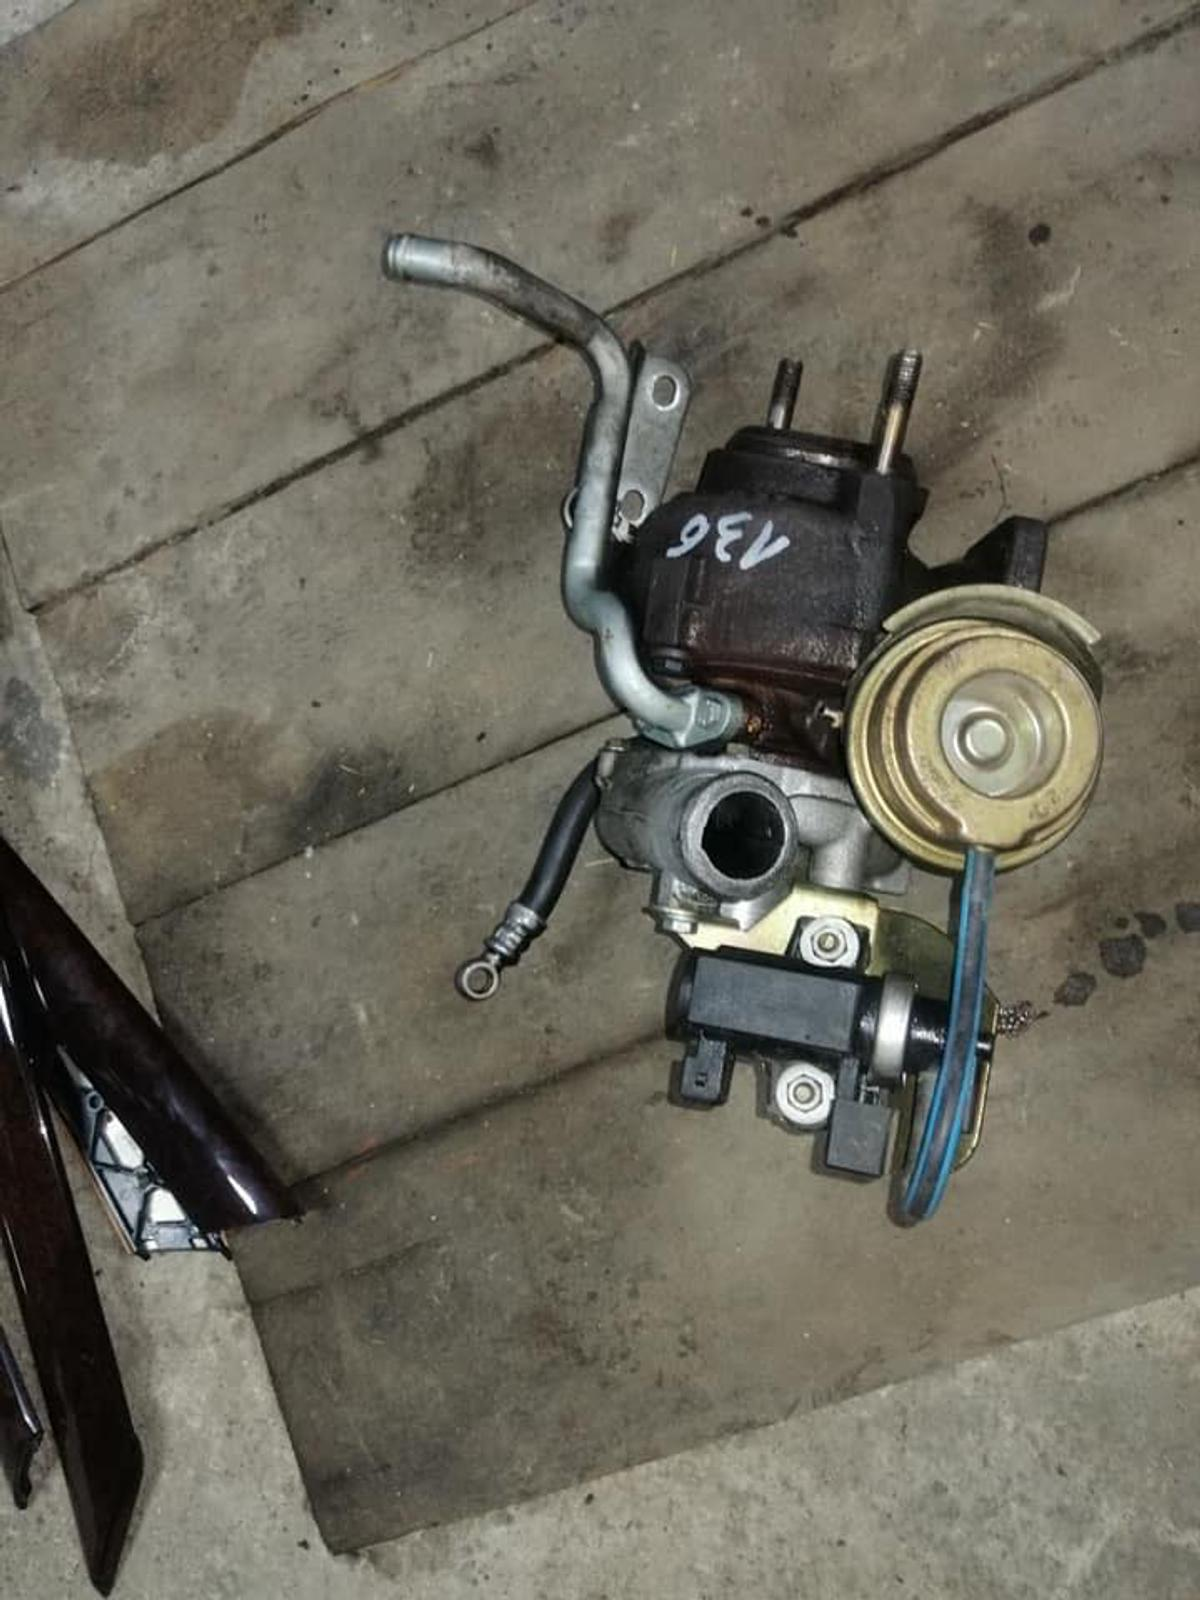 i have turbo for bmw 320 diesel for more info 07306778808